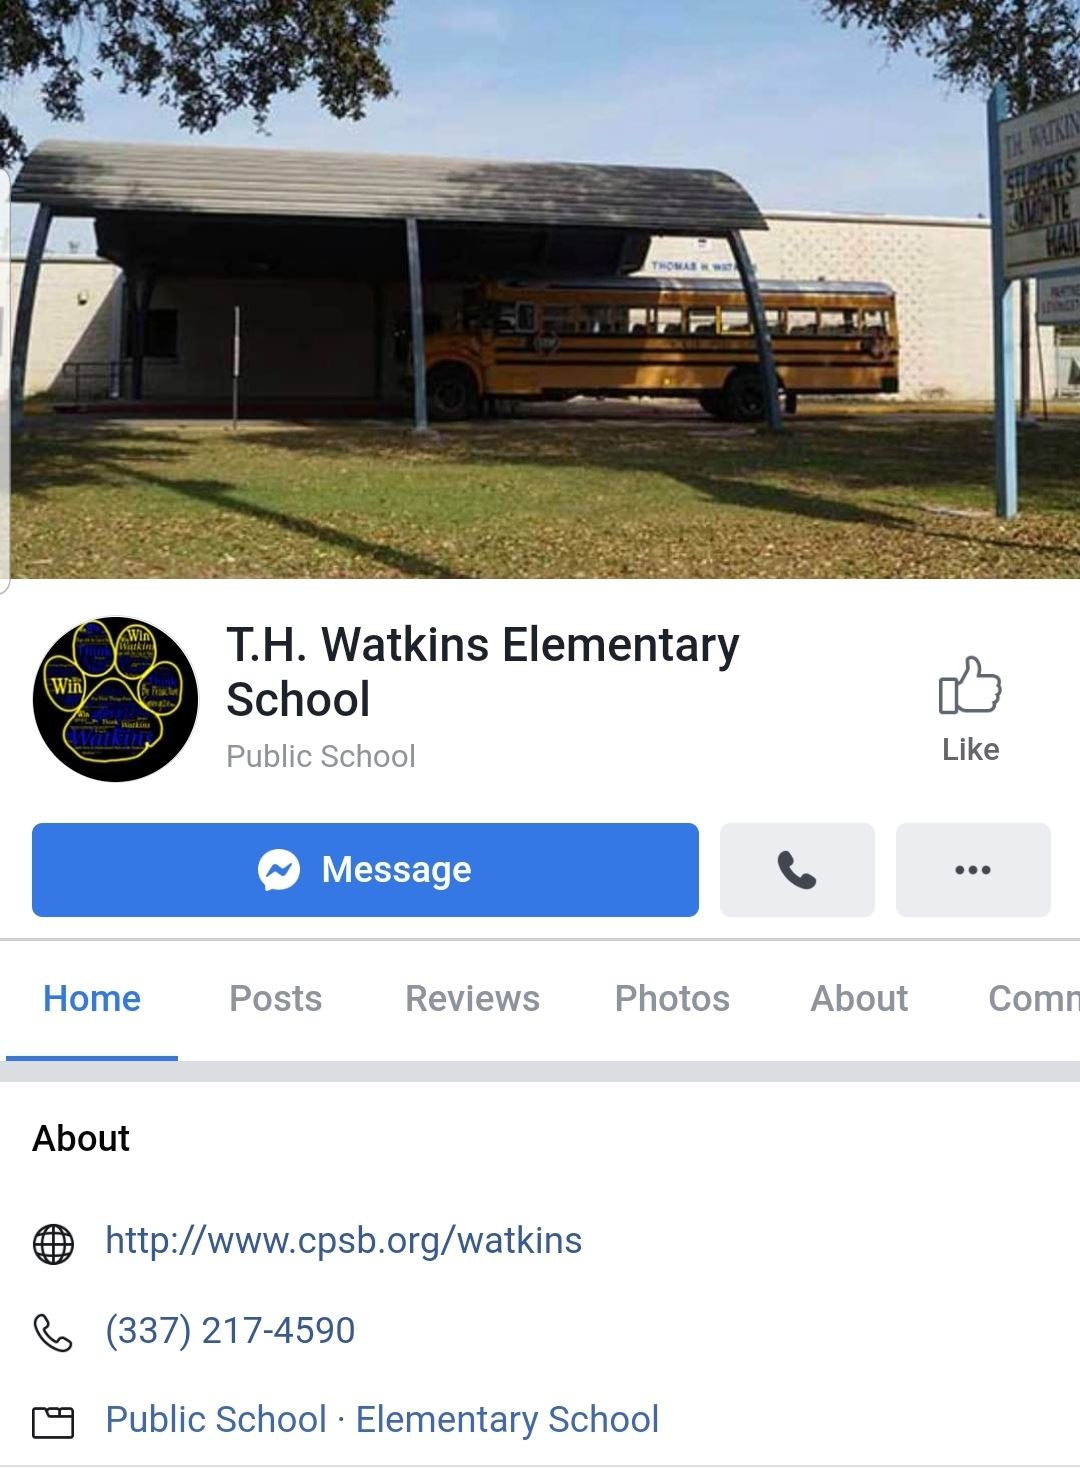 Visit and like our school facebook page at https://fb.me/itsawatkinsthing